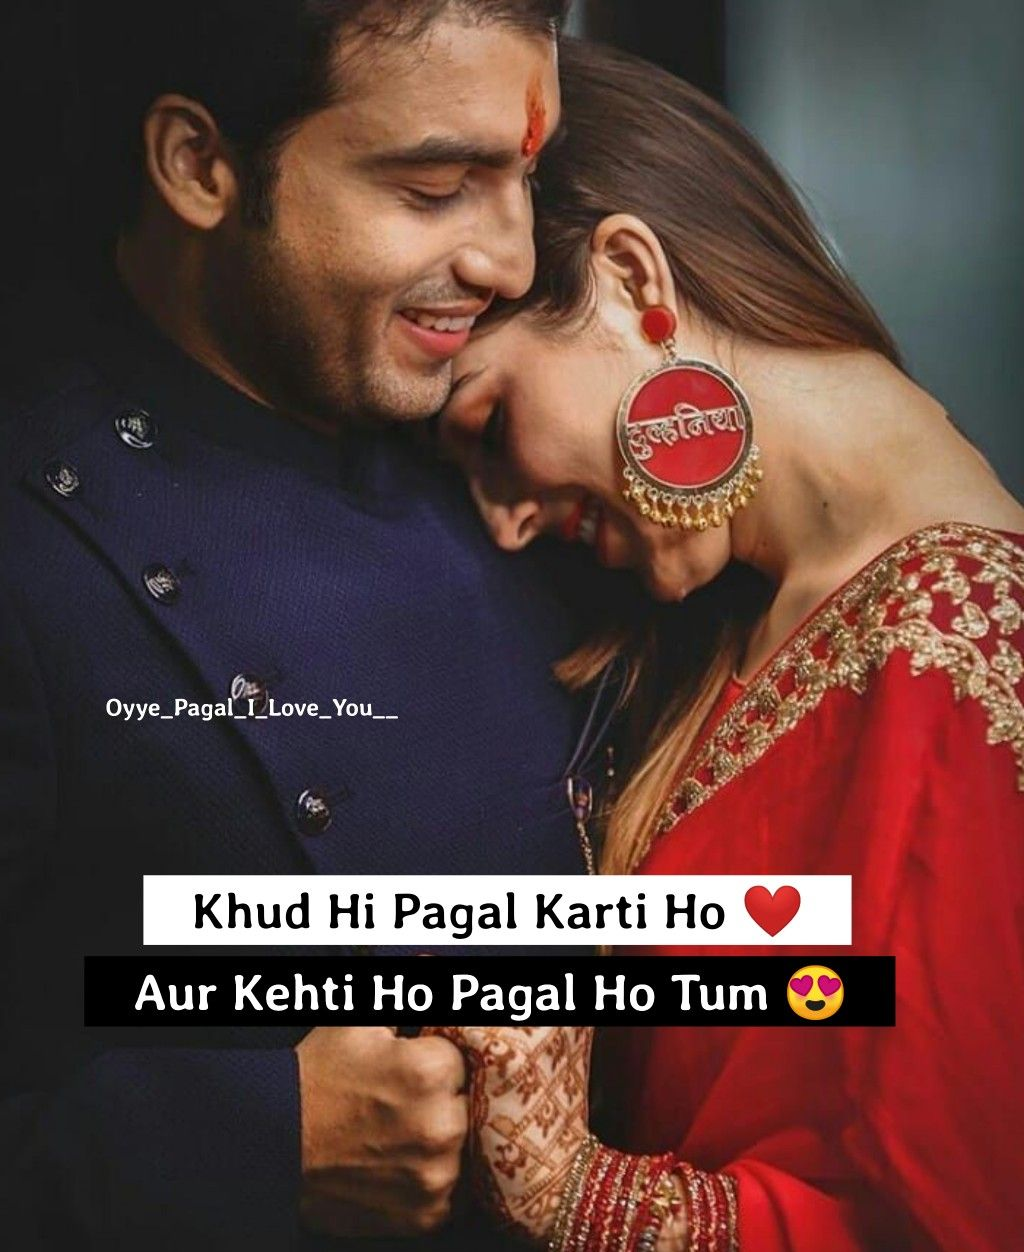 Pin By Saiyed Maaz On Ta Wallaper Romantic Love Quotes Romantic Quotes In Hindi Cute Love Couple